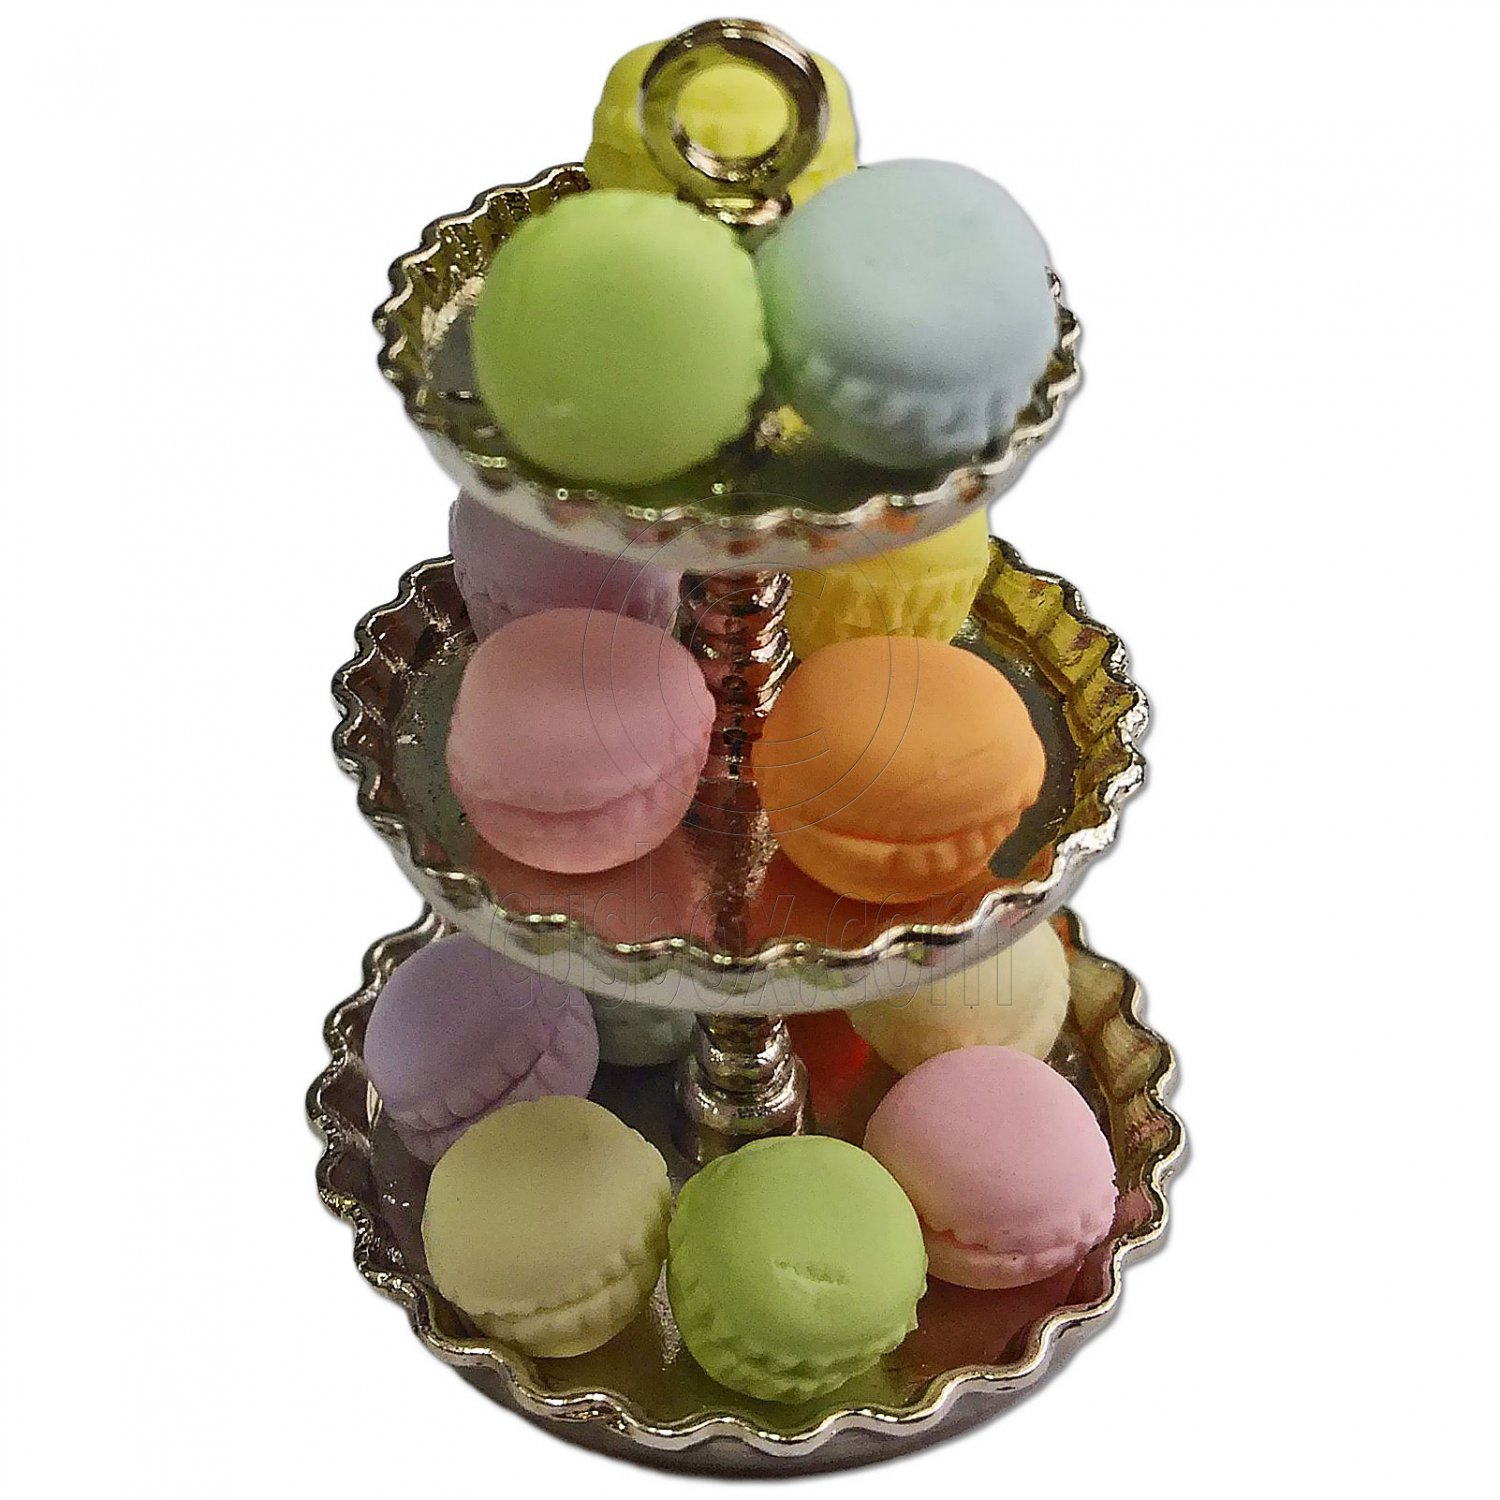 Silver Metal 3-Tiers Tiered Cake Stand With 14 Macarons 1